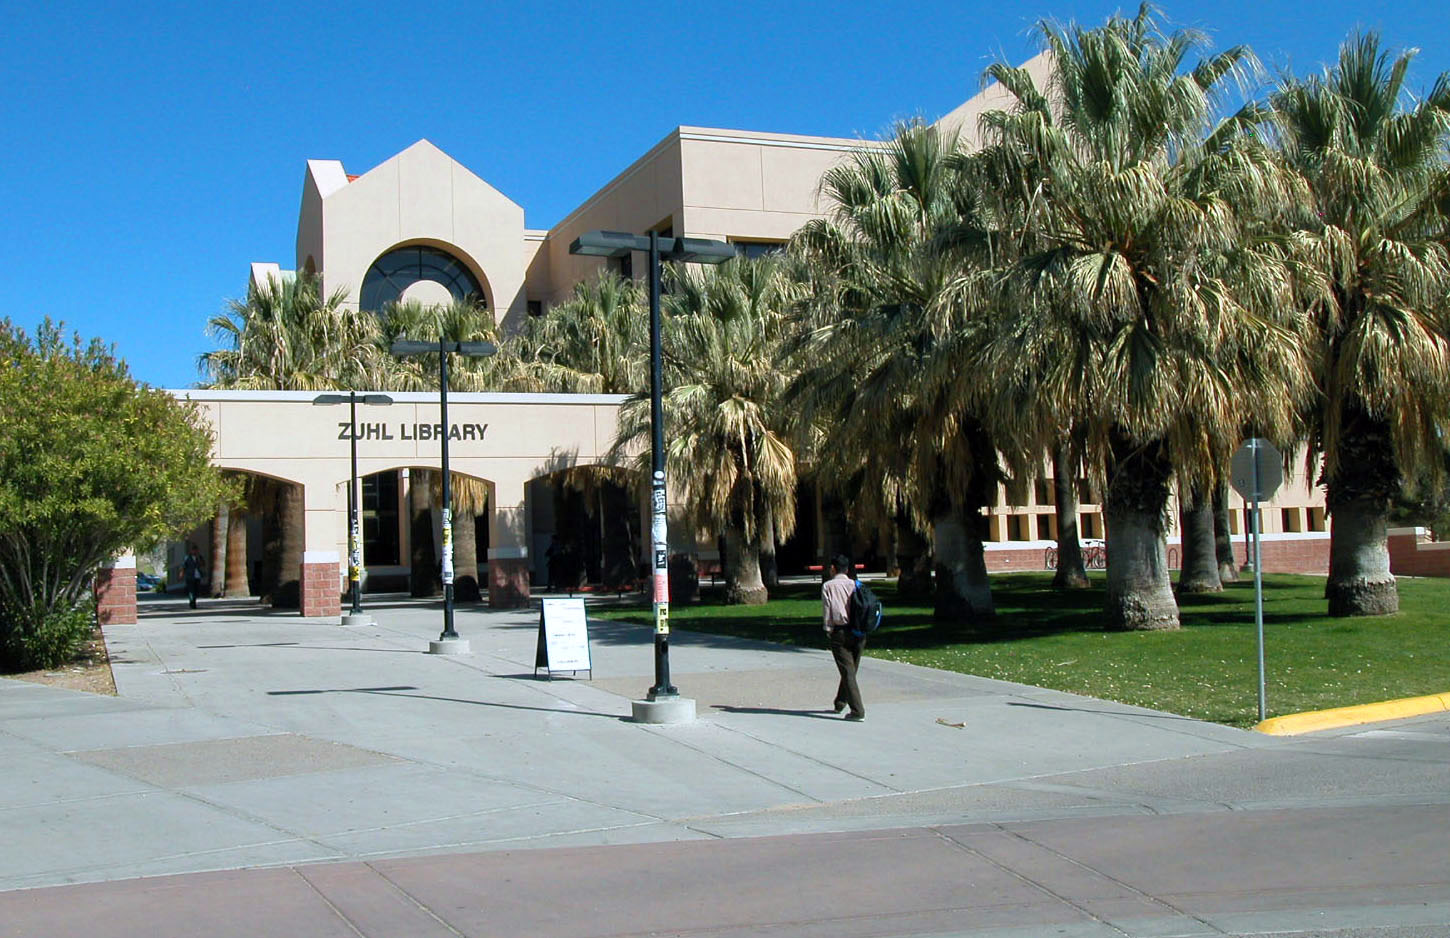 Entrance to the Zuhl library courtyard